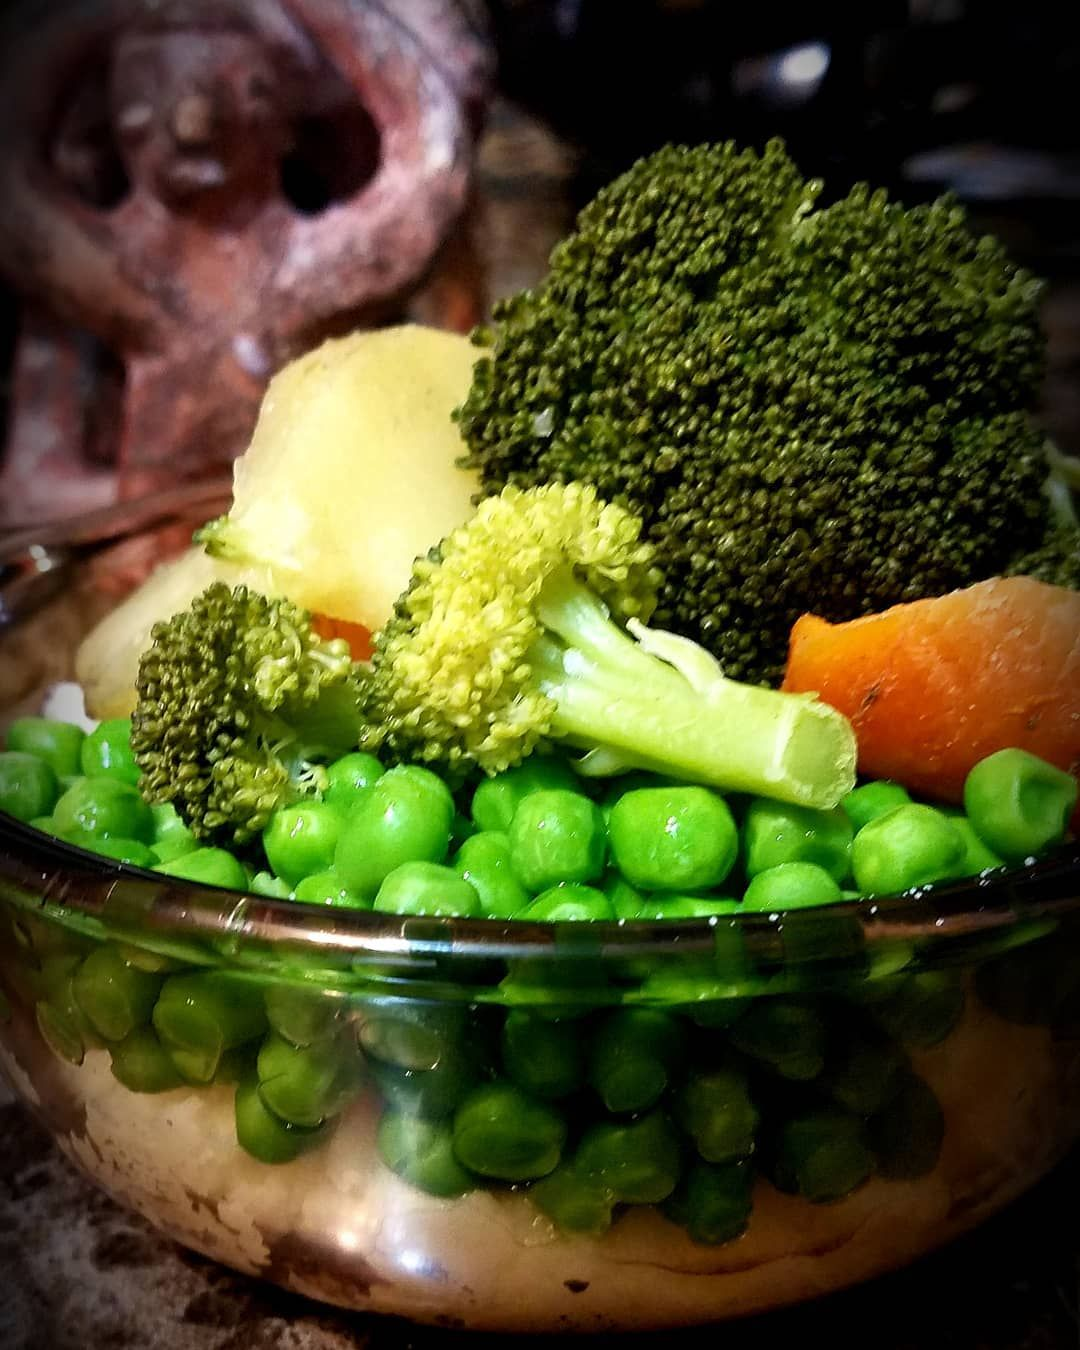 Hot Veggie Bowl Steamed Peas Carrots Broccoli Potatoes Served Over A Hot Bed Of Mashed Potatoes Steam Broccoli And Potatoes Vegan Dinners Veggie Bowl